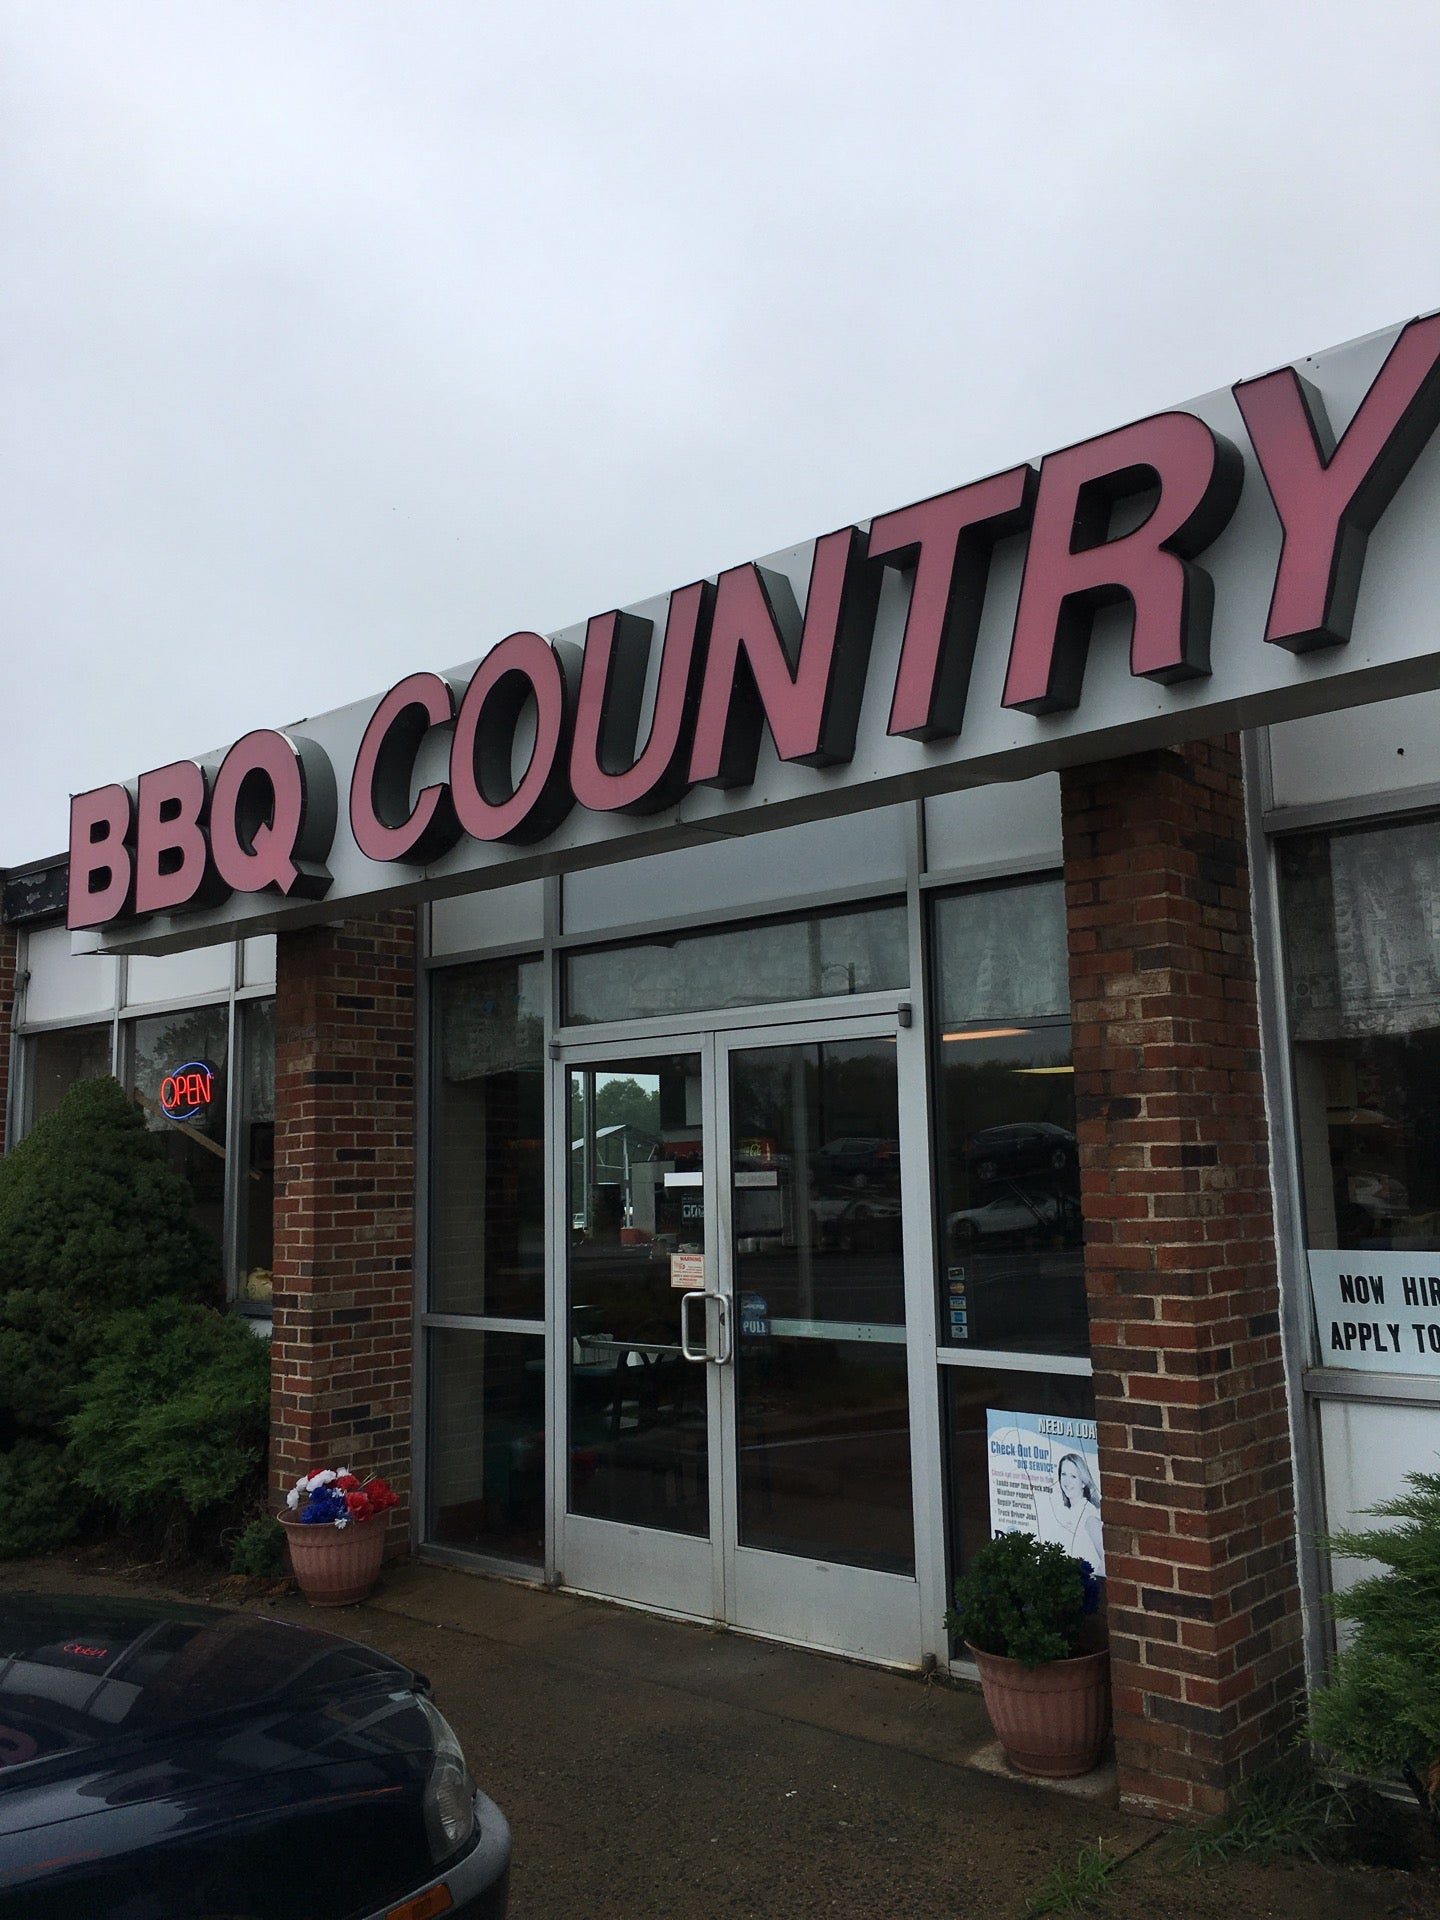 Barbeque Country,